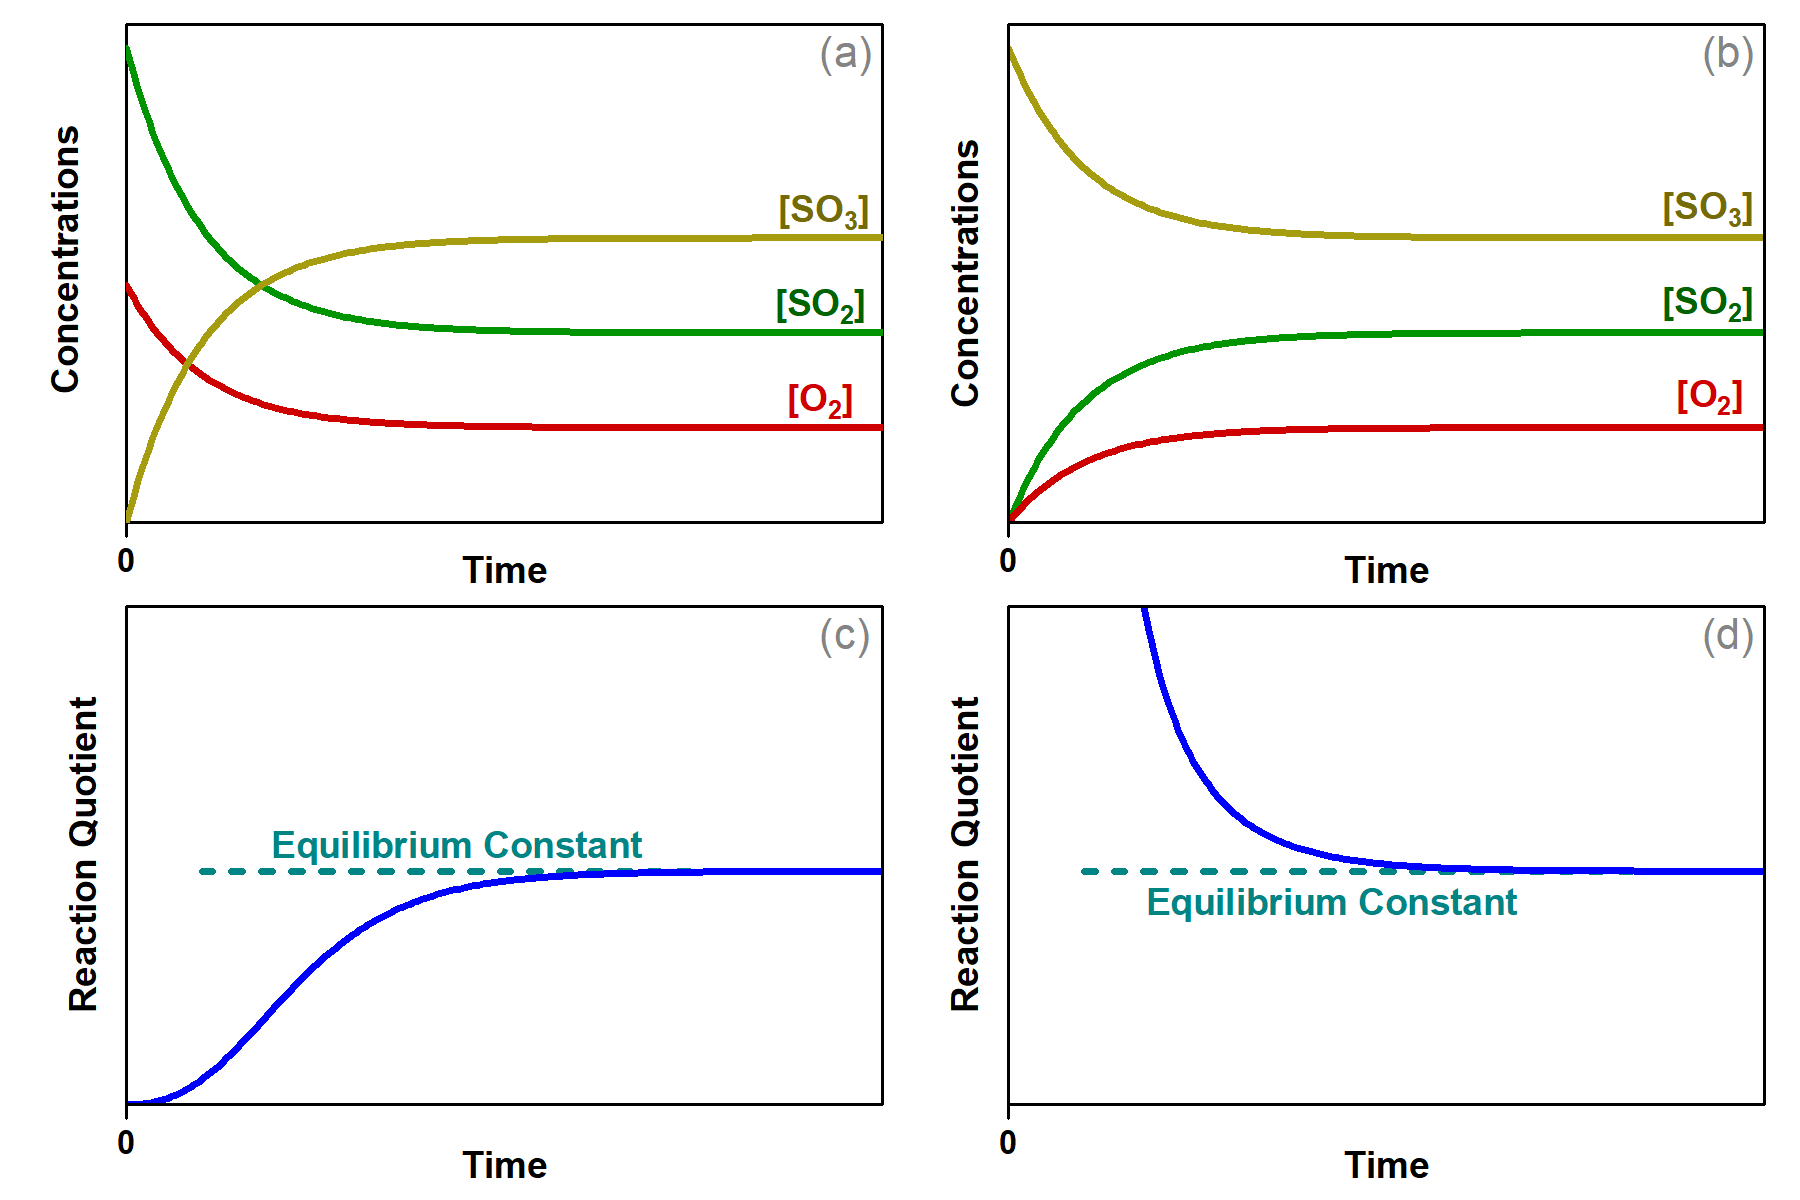 """Four graphs are shown and labeled, """"a,"""" """"b,"""" """"c,"""" and """"d."""" The y-axis on graph a is labeled, """"Concentration,"""" and the x-axis is labeled, """"Time."""" Three curves are plotted on graph a. The first is labeled, """"[ S O subscript 2 ];"""" this line starts high on the y-axis, ends midway down the y-axis, has a steep initial slope and a more gradual slope as it approaches the far right on the x-axis. The second curve on this graph is labeled, """"[ O subscript 2 ];"""" this line mimics the first except that it starts and ends about fifty percent lower on the y-axis. The third curve is the inverse of the first in shape and is labeled, """"[ S O subscript 3 ]."""" The y-axis on graph b is labeled, """"Concentration,"""" and the x-axis is labeled, """"Time."""" Three curves are plotted on graph b. The first is labeled, """"[ S O subscript 2 ];"""" this line starts low on the y-axis, ends midway up the y-axis, has a steep initial slope and a more gradual slope as it approaches the far right on the x-axis. The second curve on this graph is labeled, """"[ O subscript 2 ];"""" this line mimics the first except that it ends about fifty percent lower on the y-axis. The third curve is the inverse of the first in shape and is labeled, """"[ S O subscript 3 ]."""" The y-axis on graph c is labeled, """"Reaction Quotient,"""" and the x-axis is labeled, """"Time."""" A single curve is plotted on graph c. This curve begins at the bottom of the y-axis and rises steeply up near the middle of the y-axis, then levels off into a horizontal dotted line labeled, """"equilibrium constant."""" The y-axis on graph d is labeled, """"Reaction Quotient,"""" and the x-axis is labeled, """"Time."""" A single curve is plotted on graph d. This curve begins at the top of the y-axis and falls steeply down near the middle of the y-axis, then levels off into a horizontal dotted line labeled, """"equilibrium constant."""""""